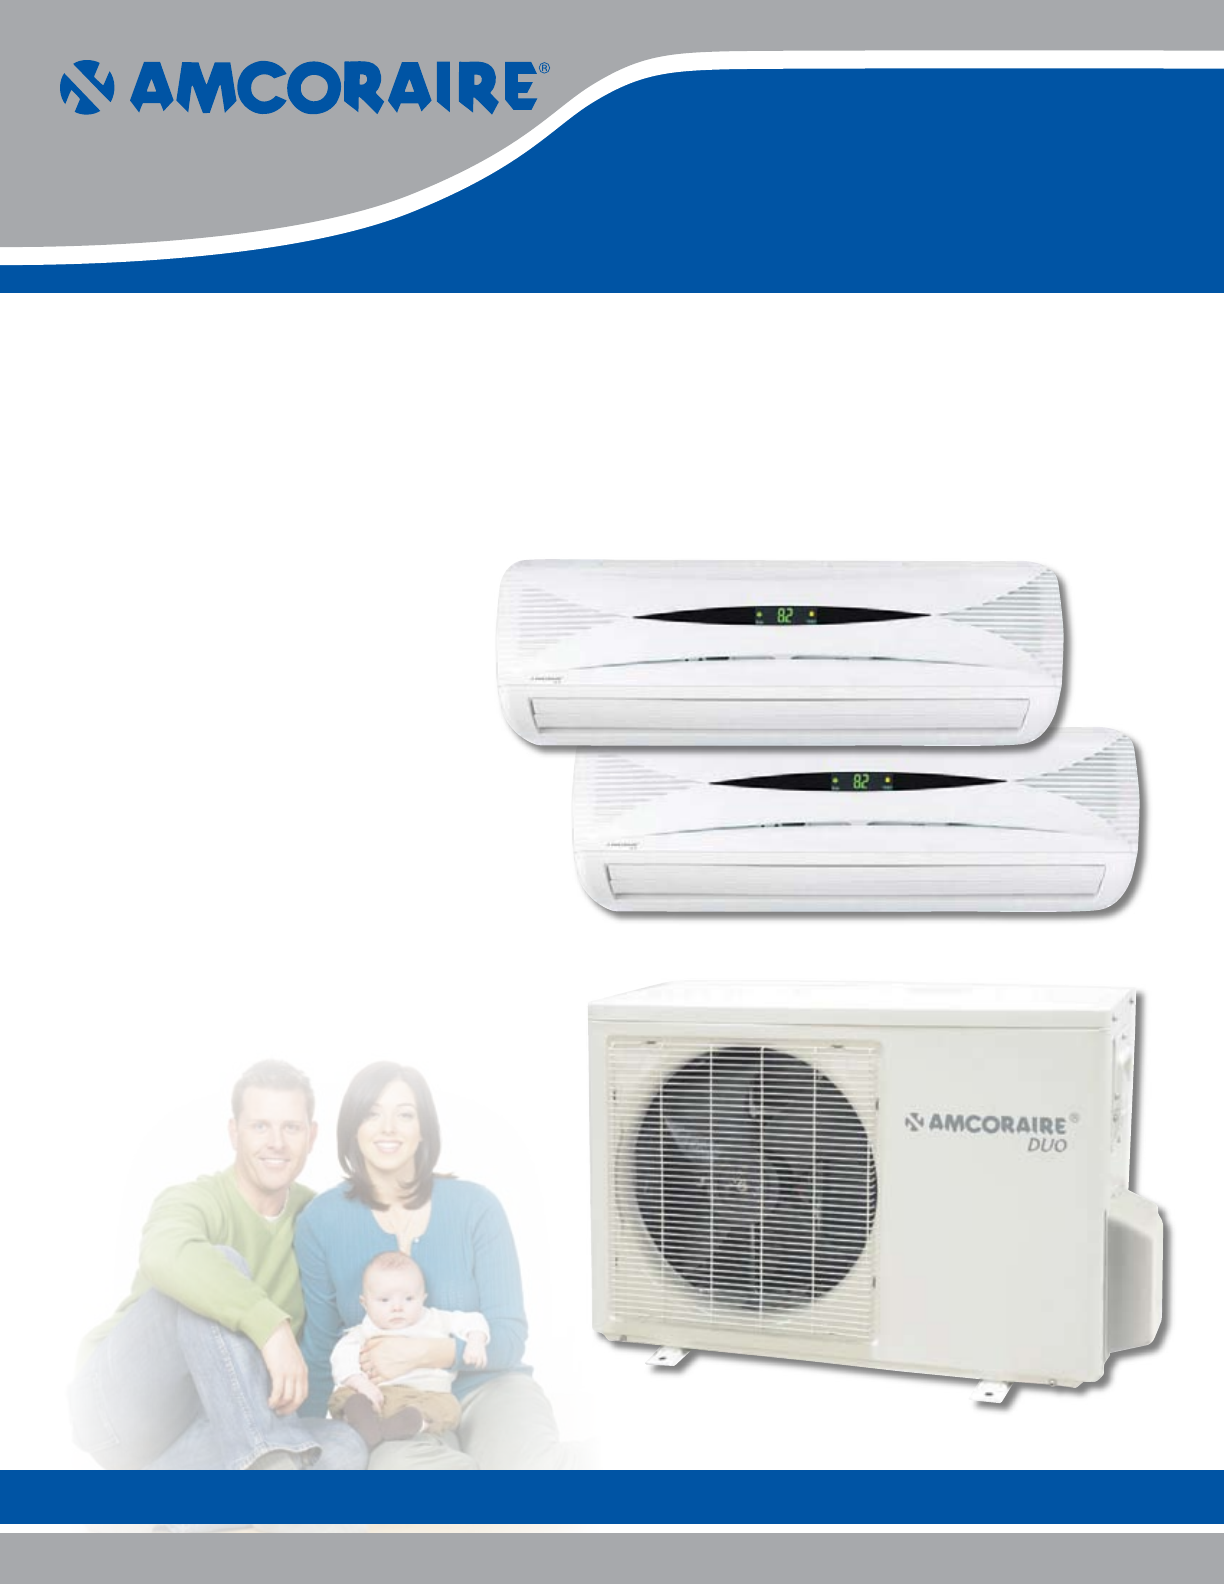 hotpoint portable air conditioner user manual